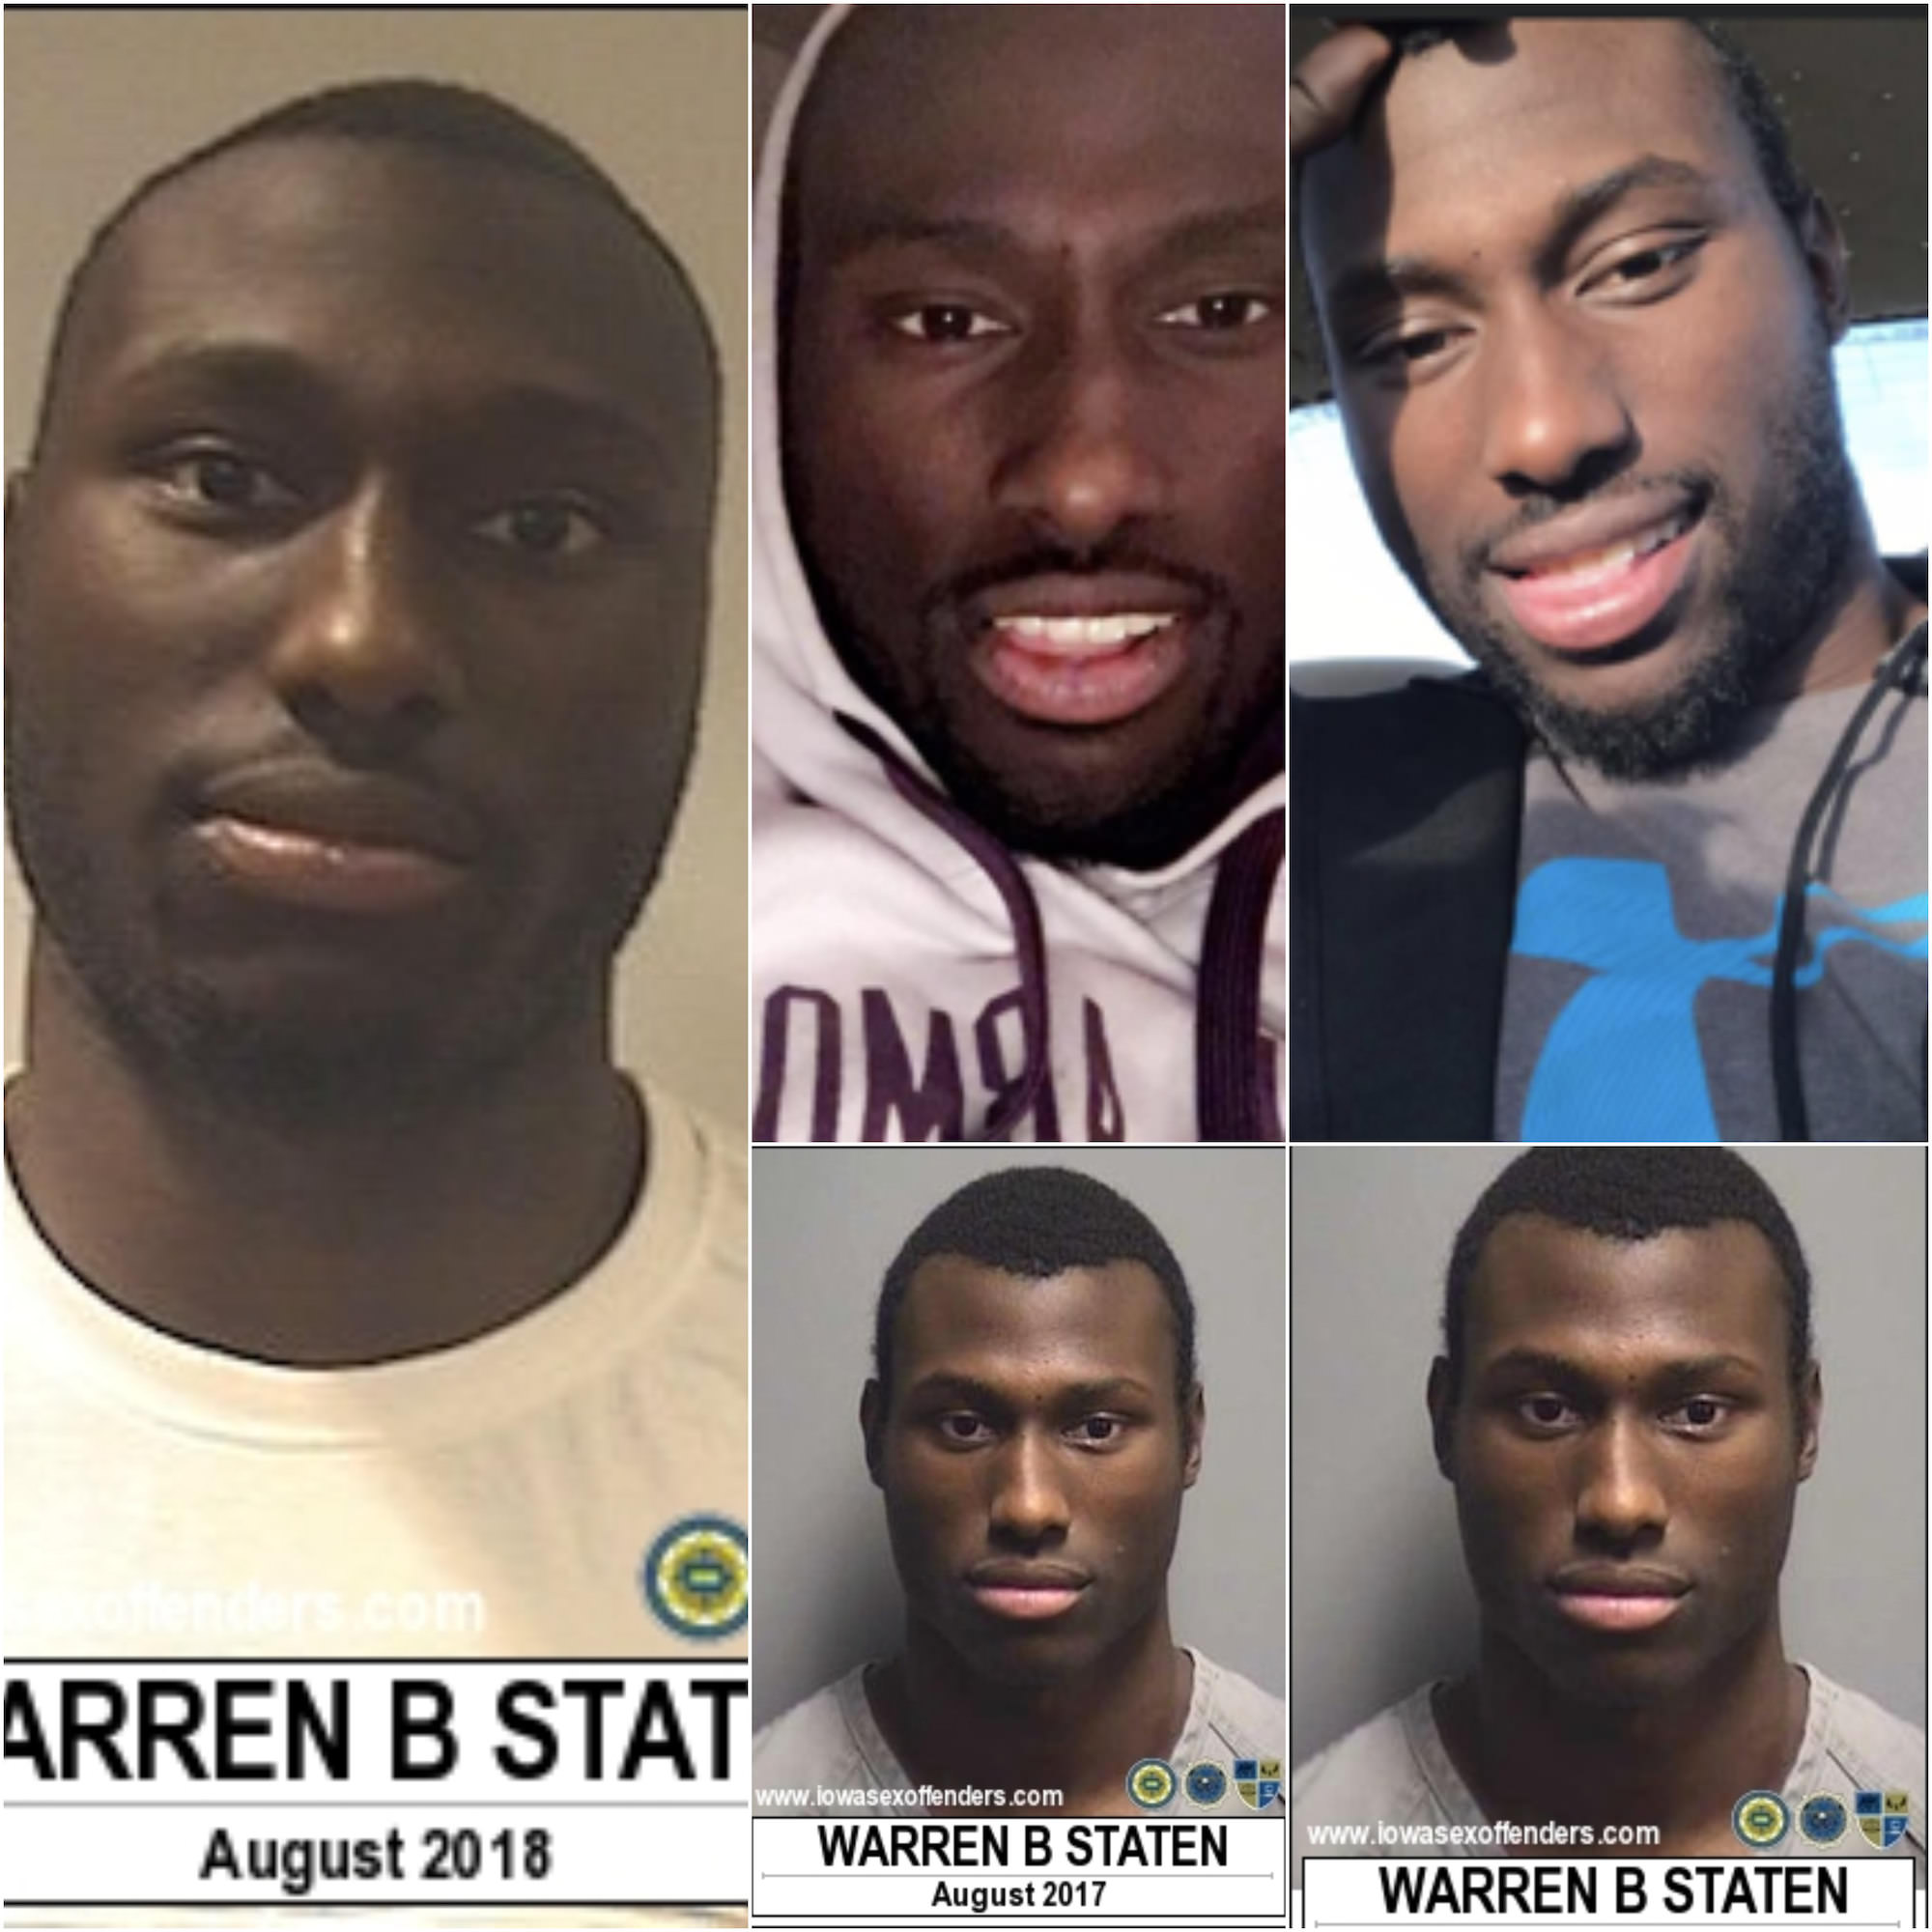 WANTED Warren Blake Staten Sex Offender Violation and Charges in Akron Iowa